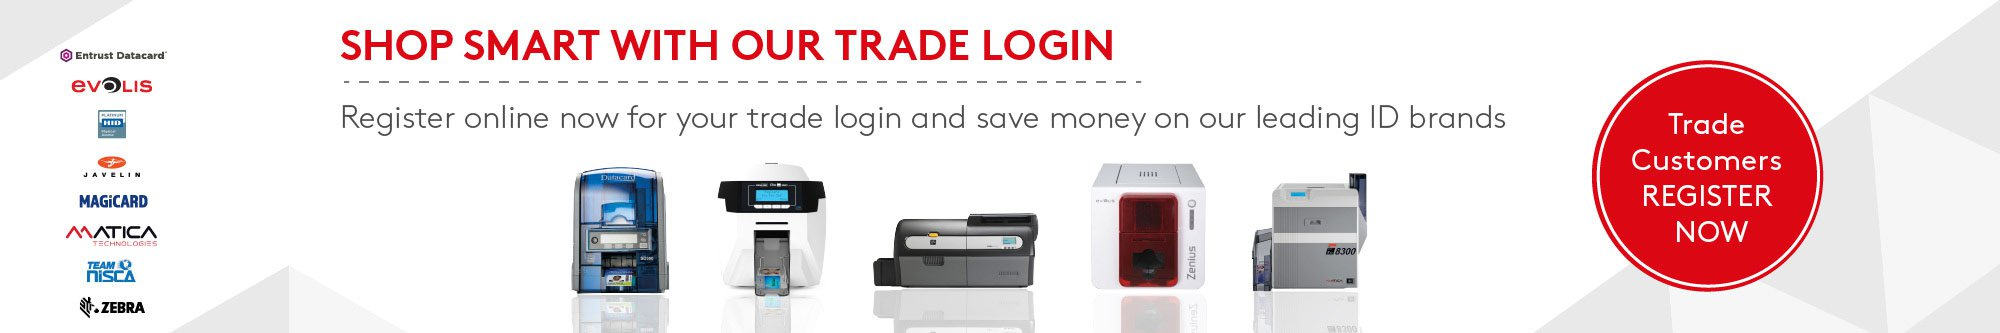 trade login banner essentra security